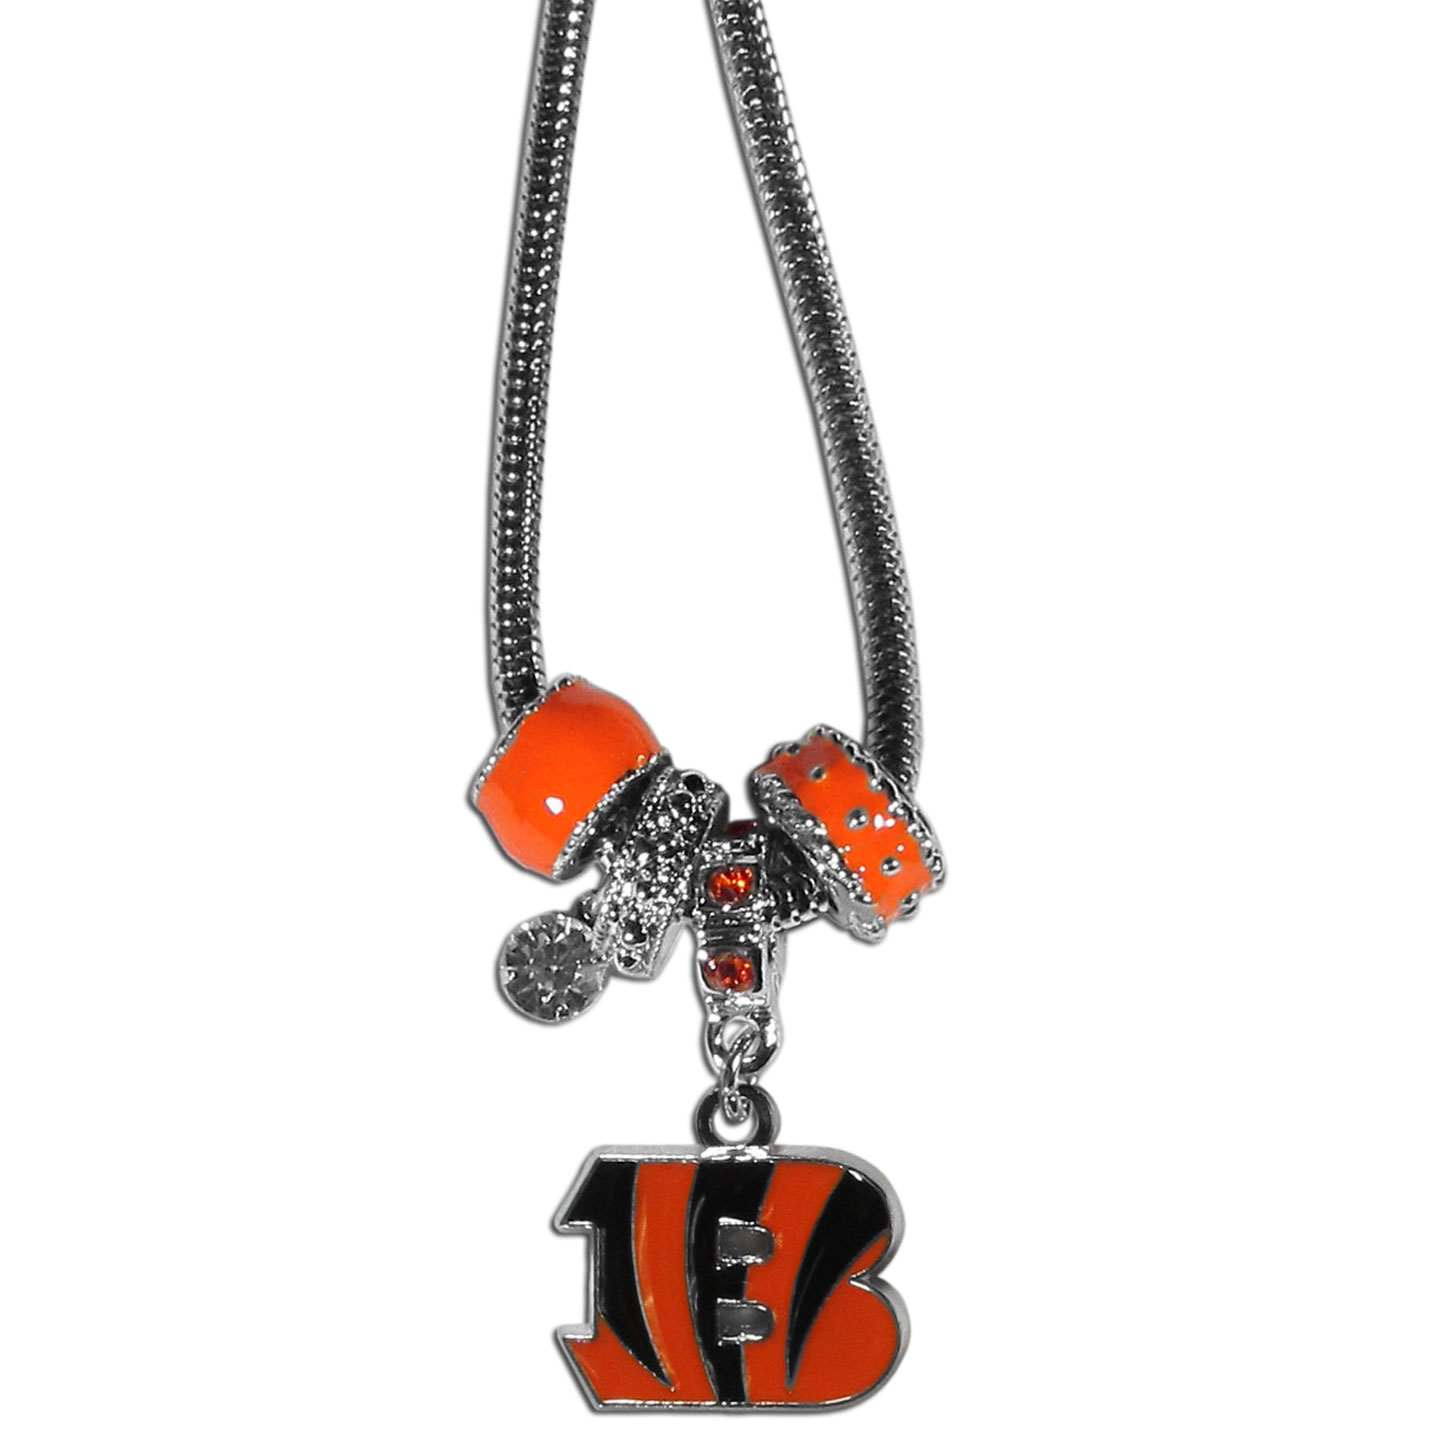 Cincinnati Bengals Euro Bead Necklace - We have combined the wildly popular Euro style beads with your favorite team to create our Cincinnati Bengals bead necklace. The 18 inch snake chain features 4 Euro beads with enameled team colors and rhinestone accents with a high polish, nickel free charm and rhinestone charm. Perfect way to show off your team pride.